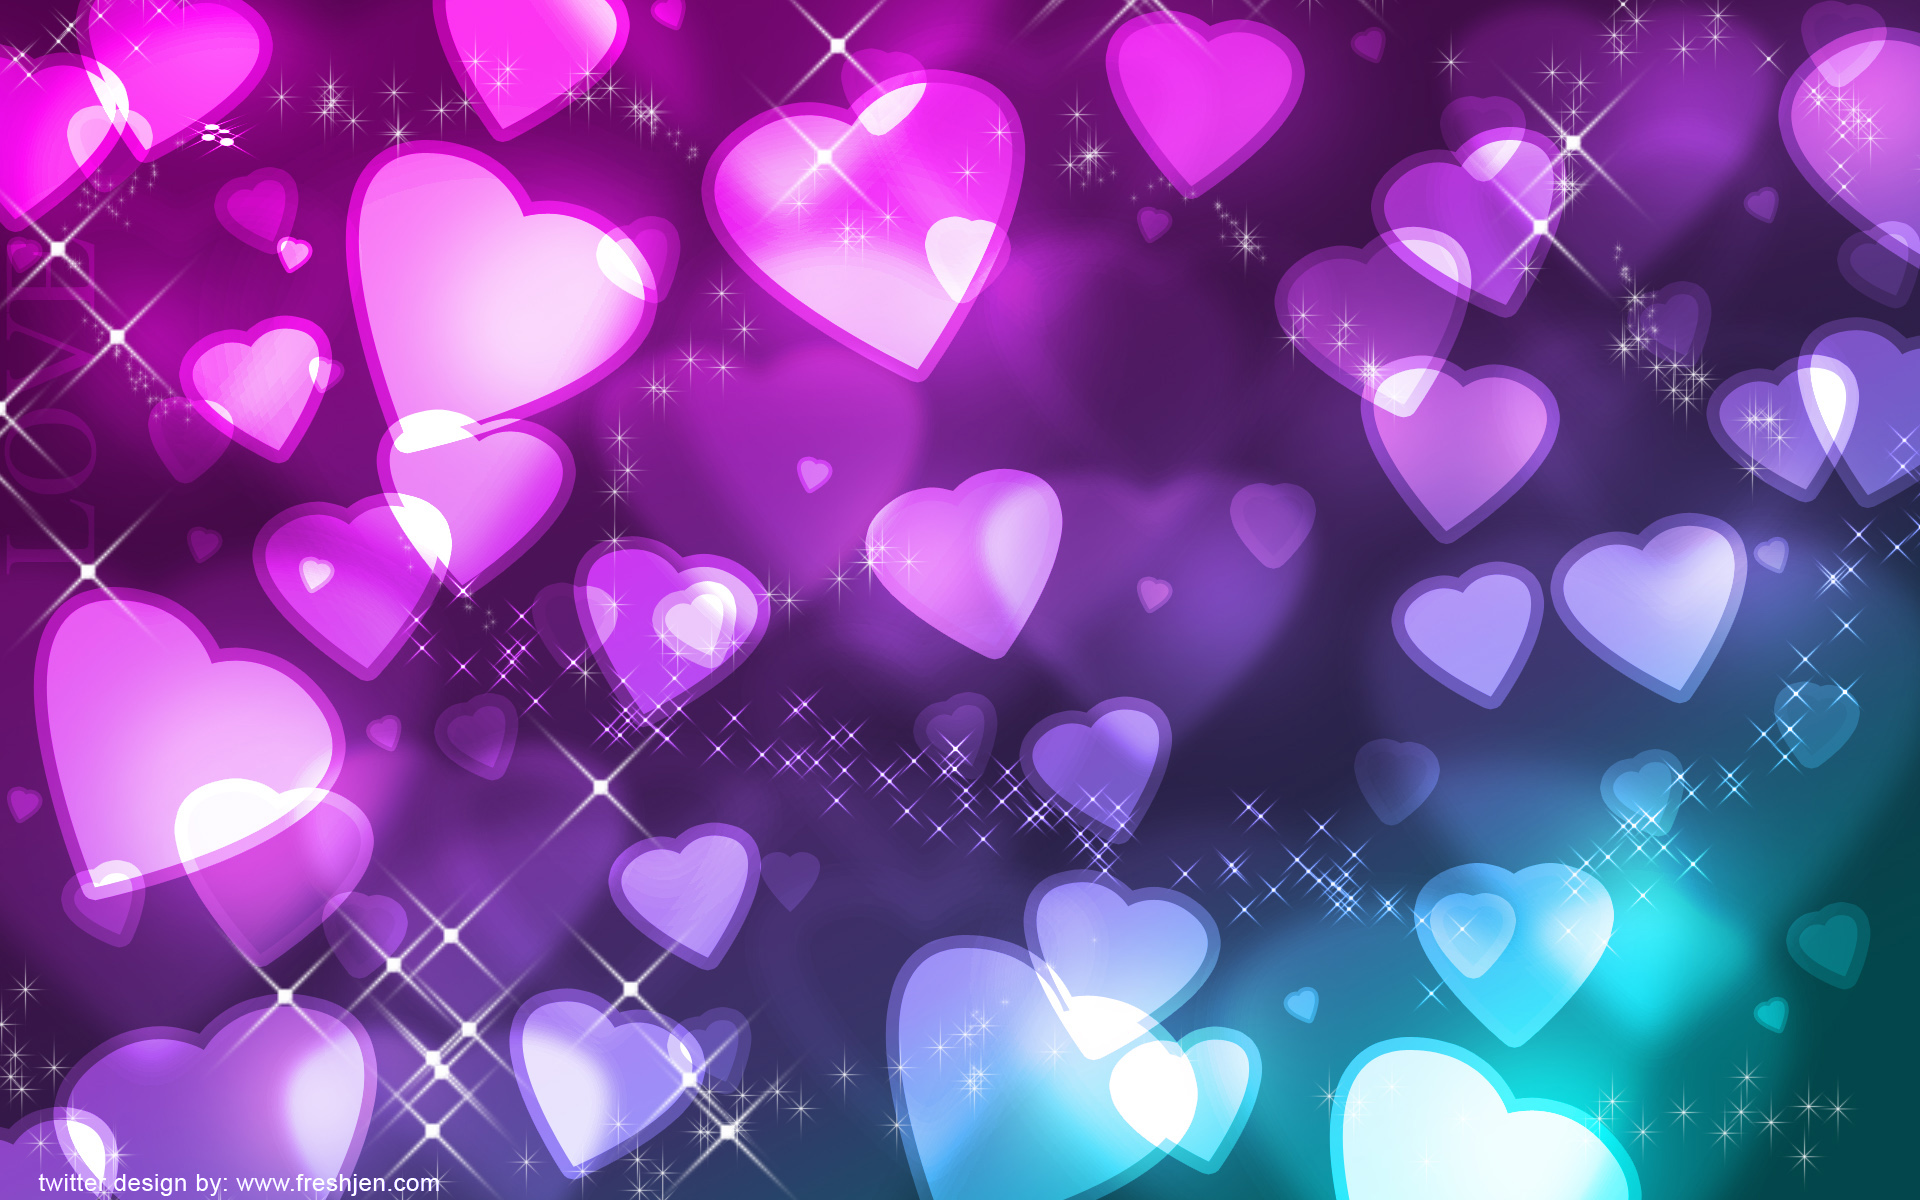 Cute Hearts Backgrounds Wallpaper Download